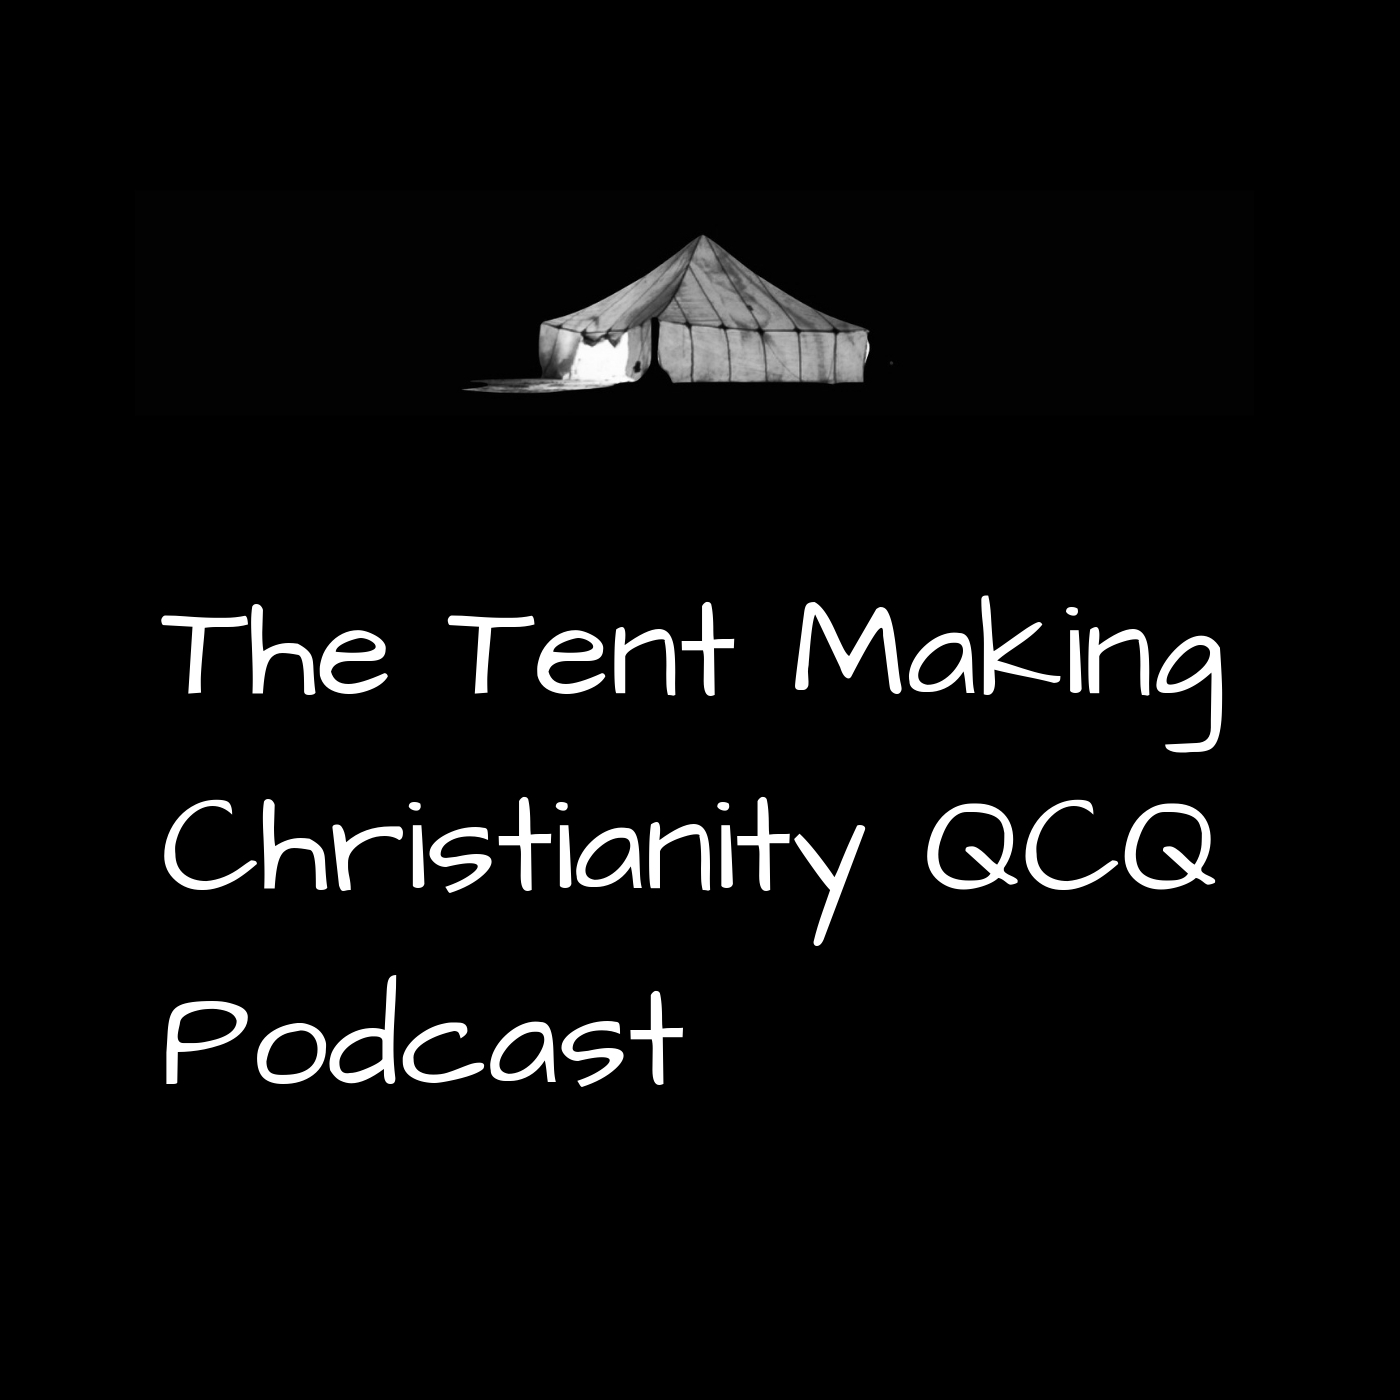 Tent Making Christianity's Top 5 QCQ Podcasts Of 2020